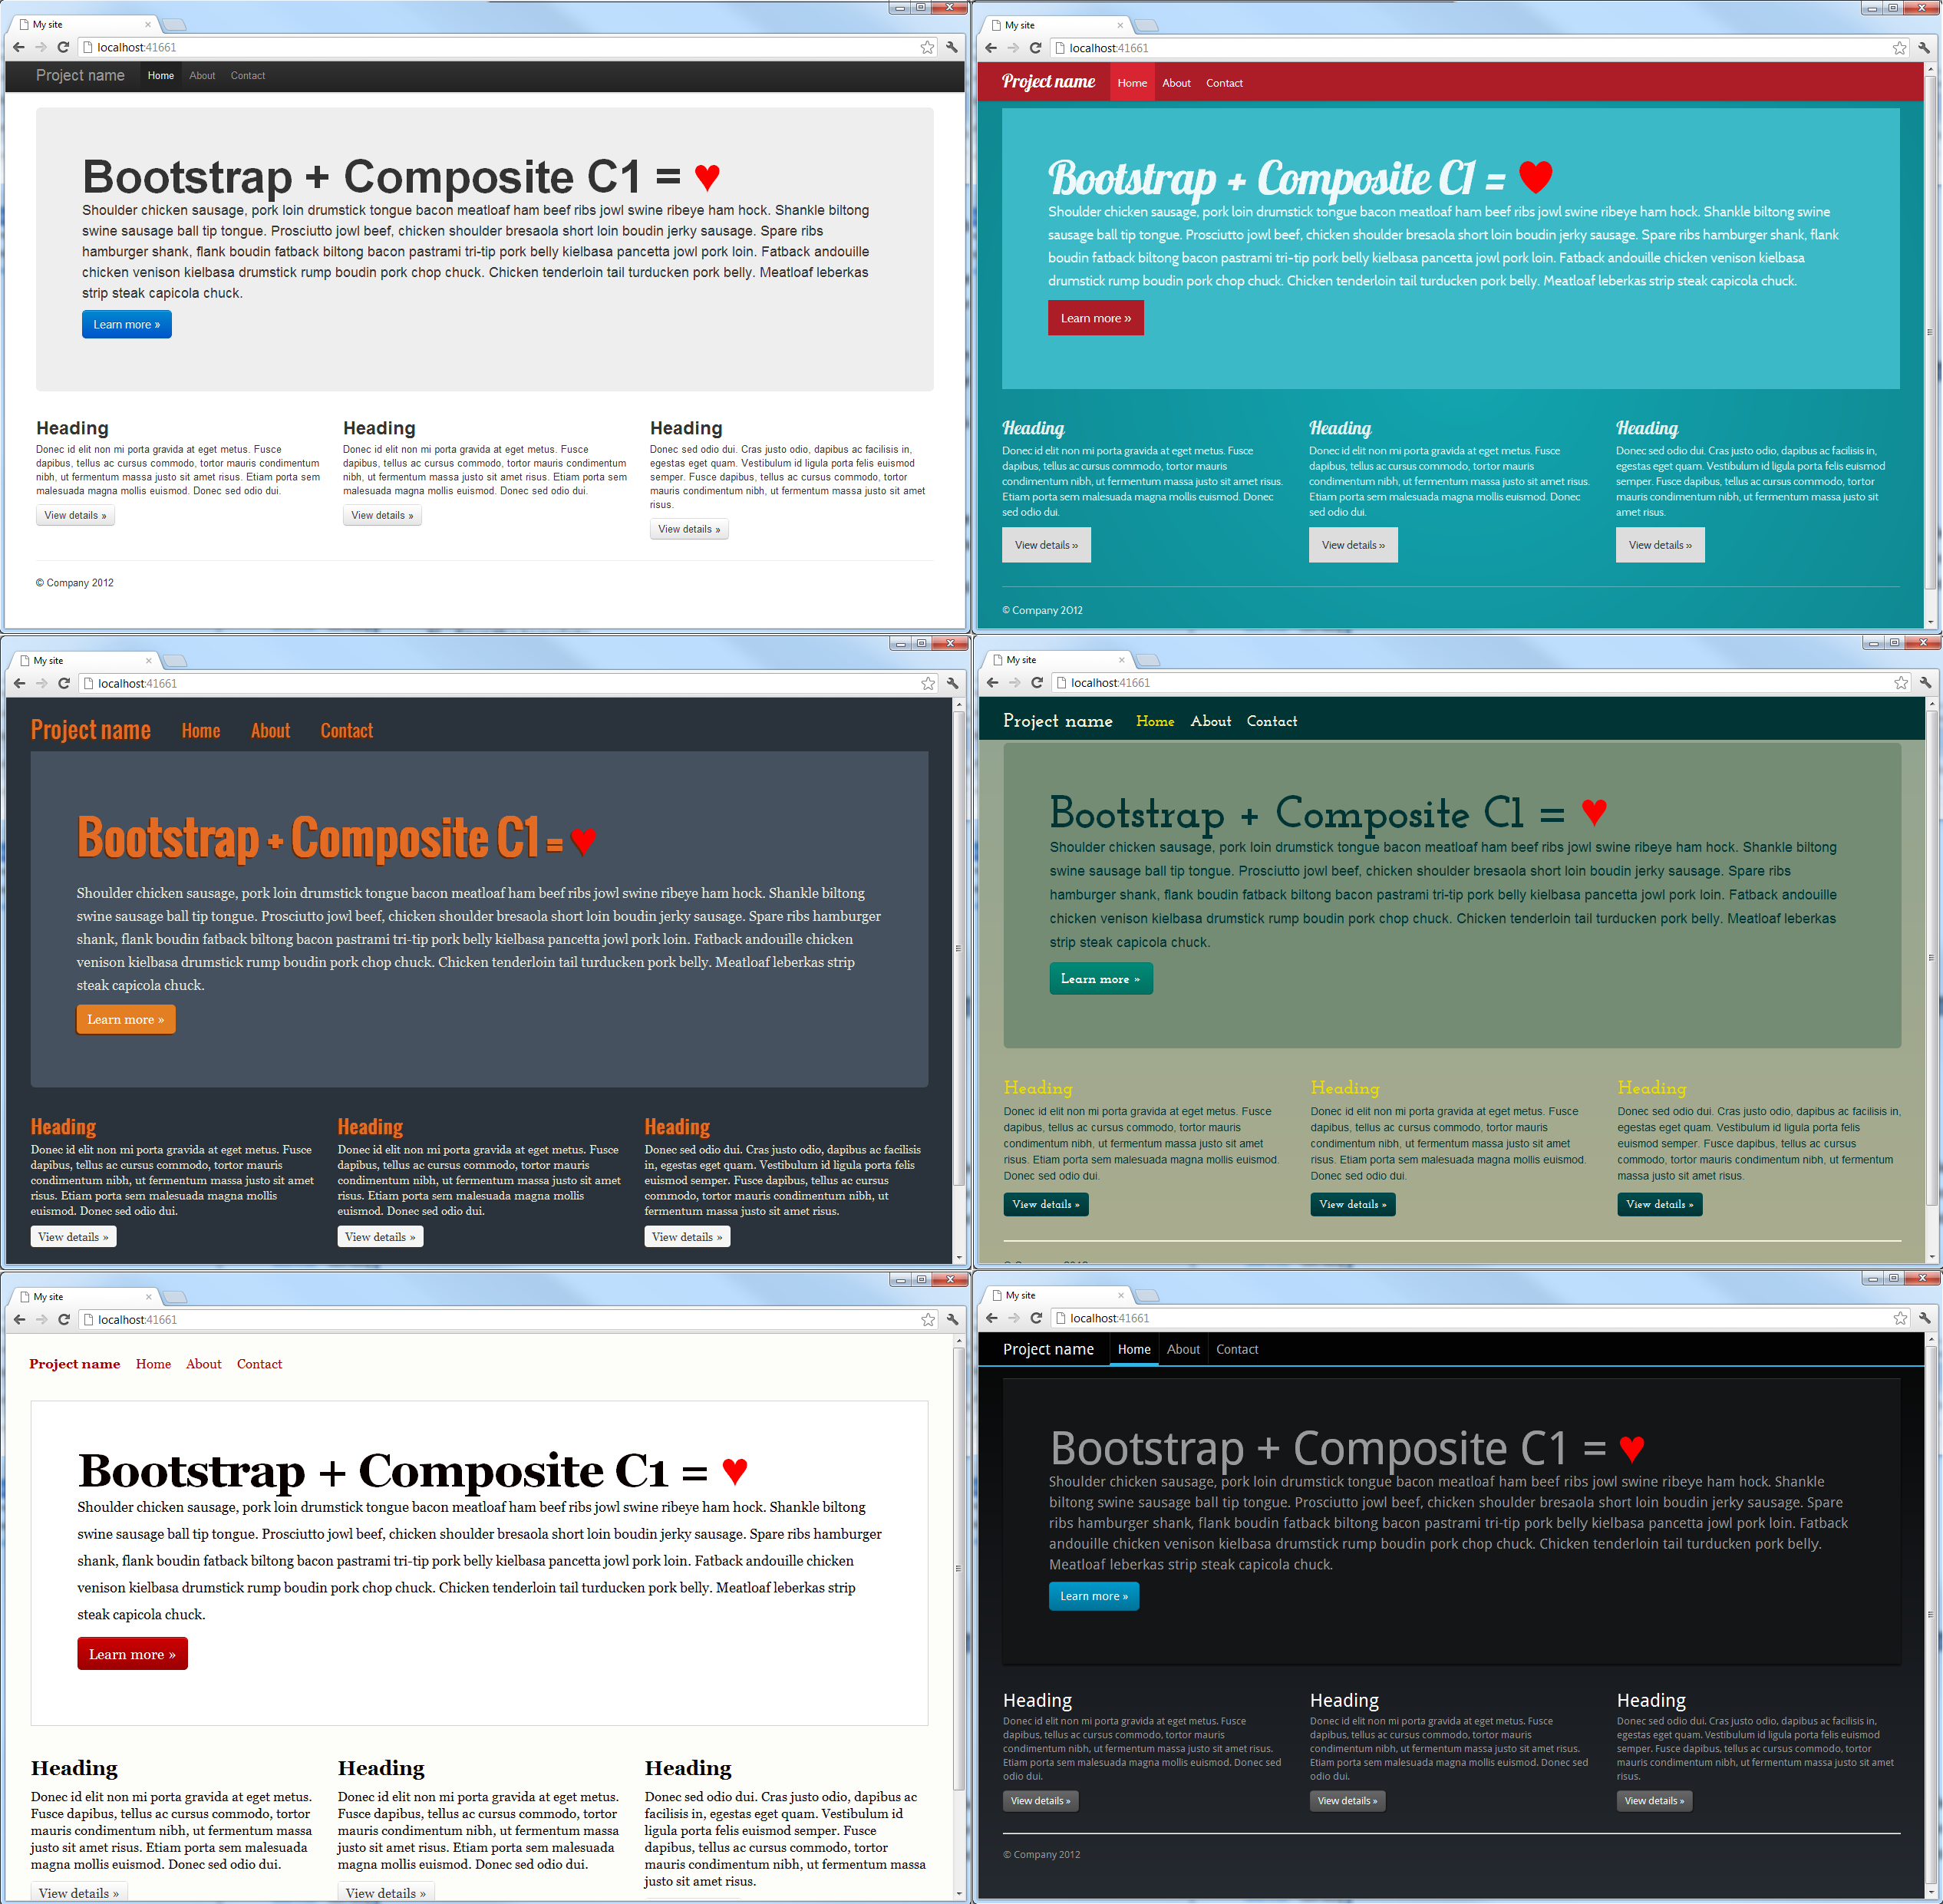 Say hello to twitter bootstrap 6 screenshots of a composite c1 site with different bootstrap themes falaconquin